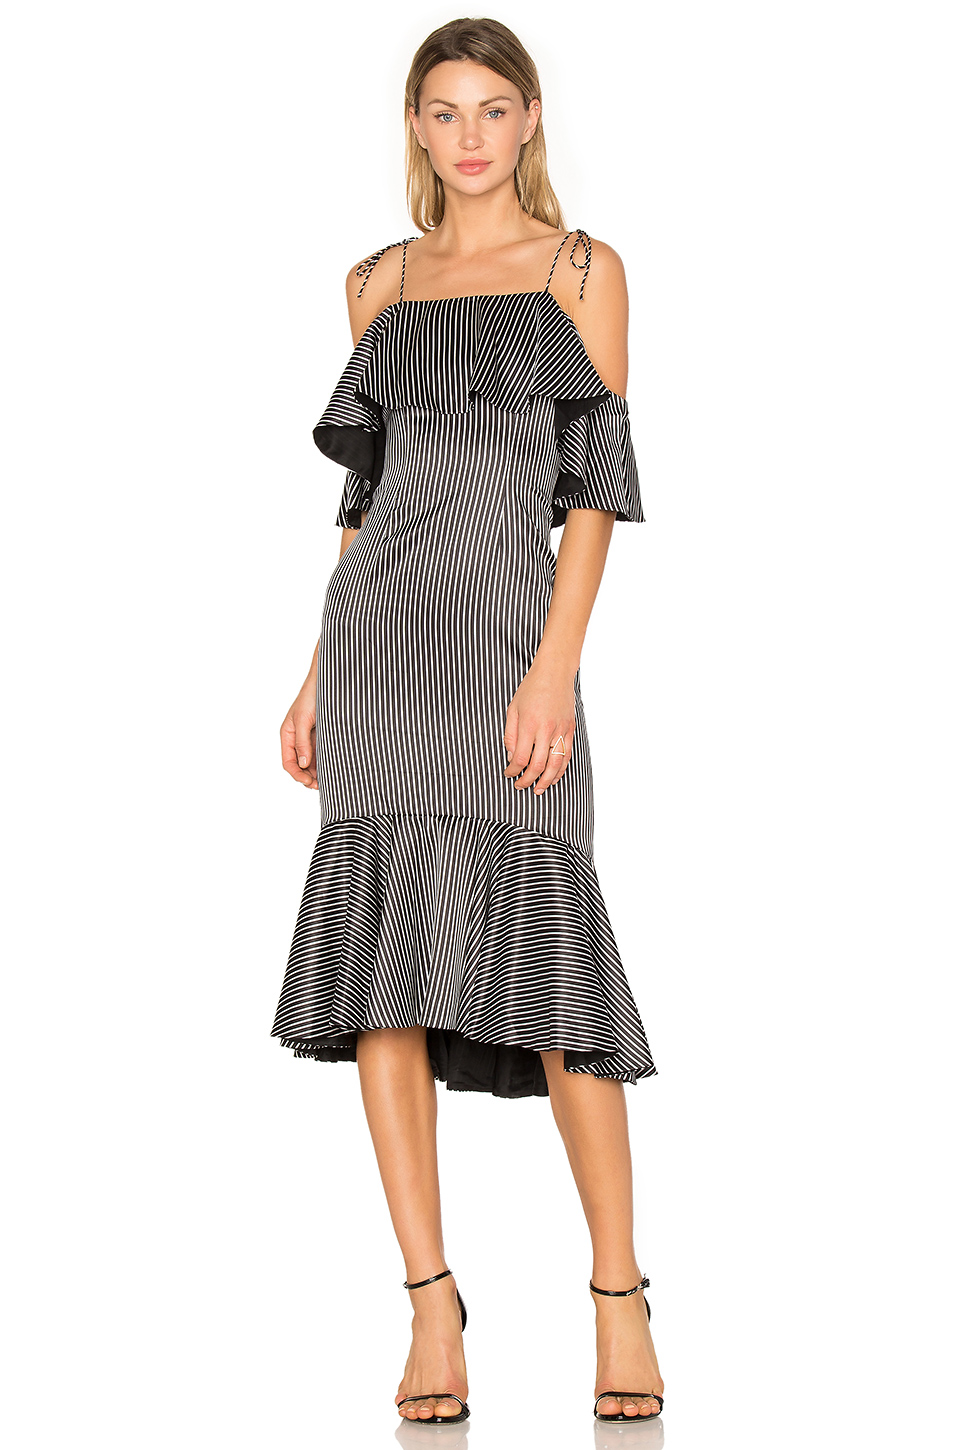 Amur Francesca Dress, $498